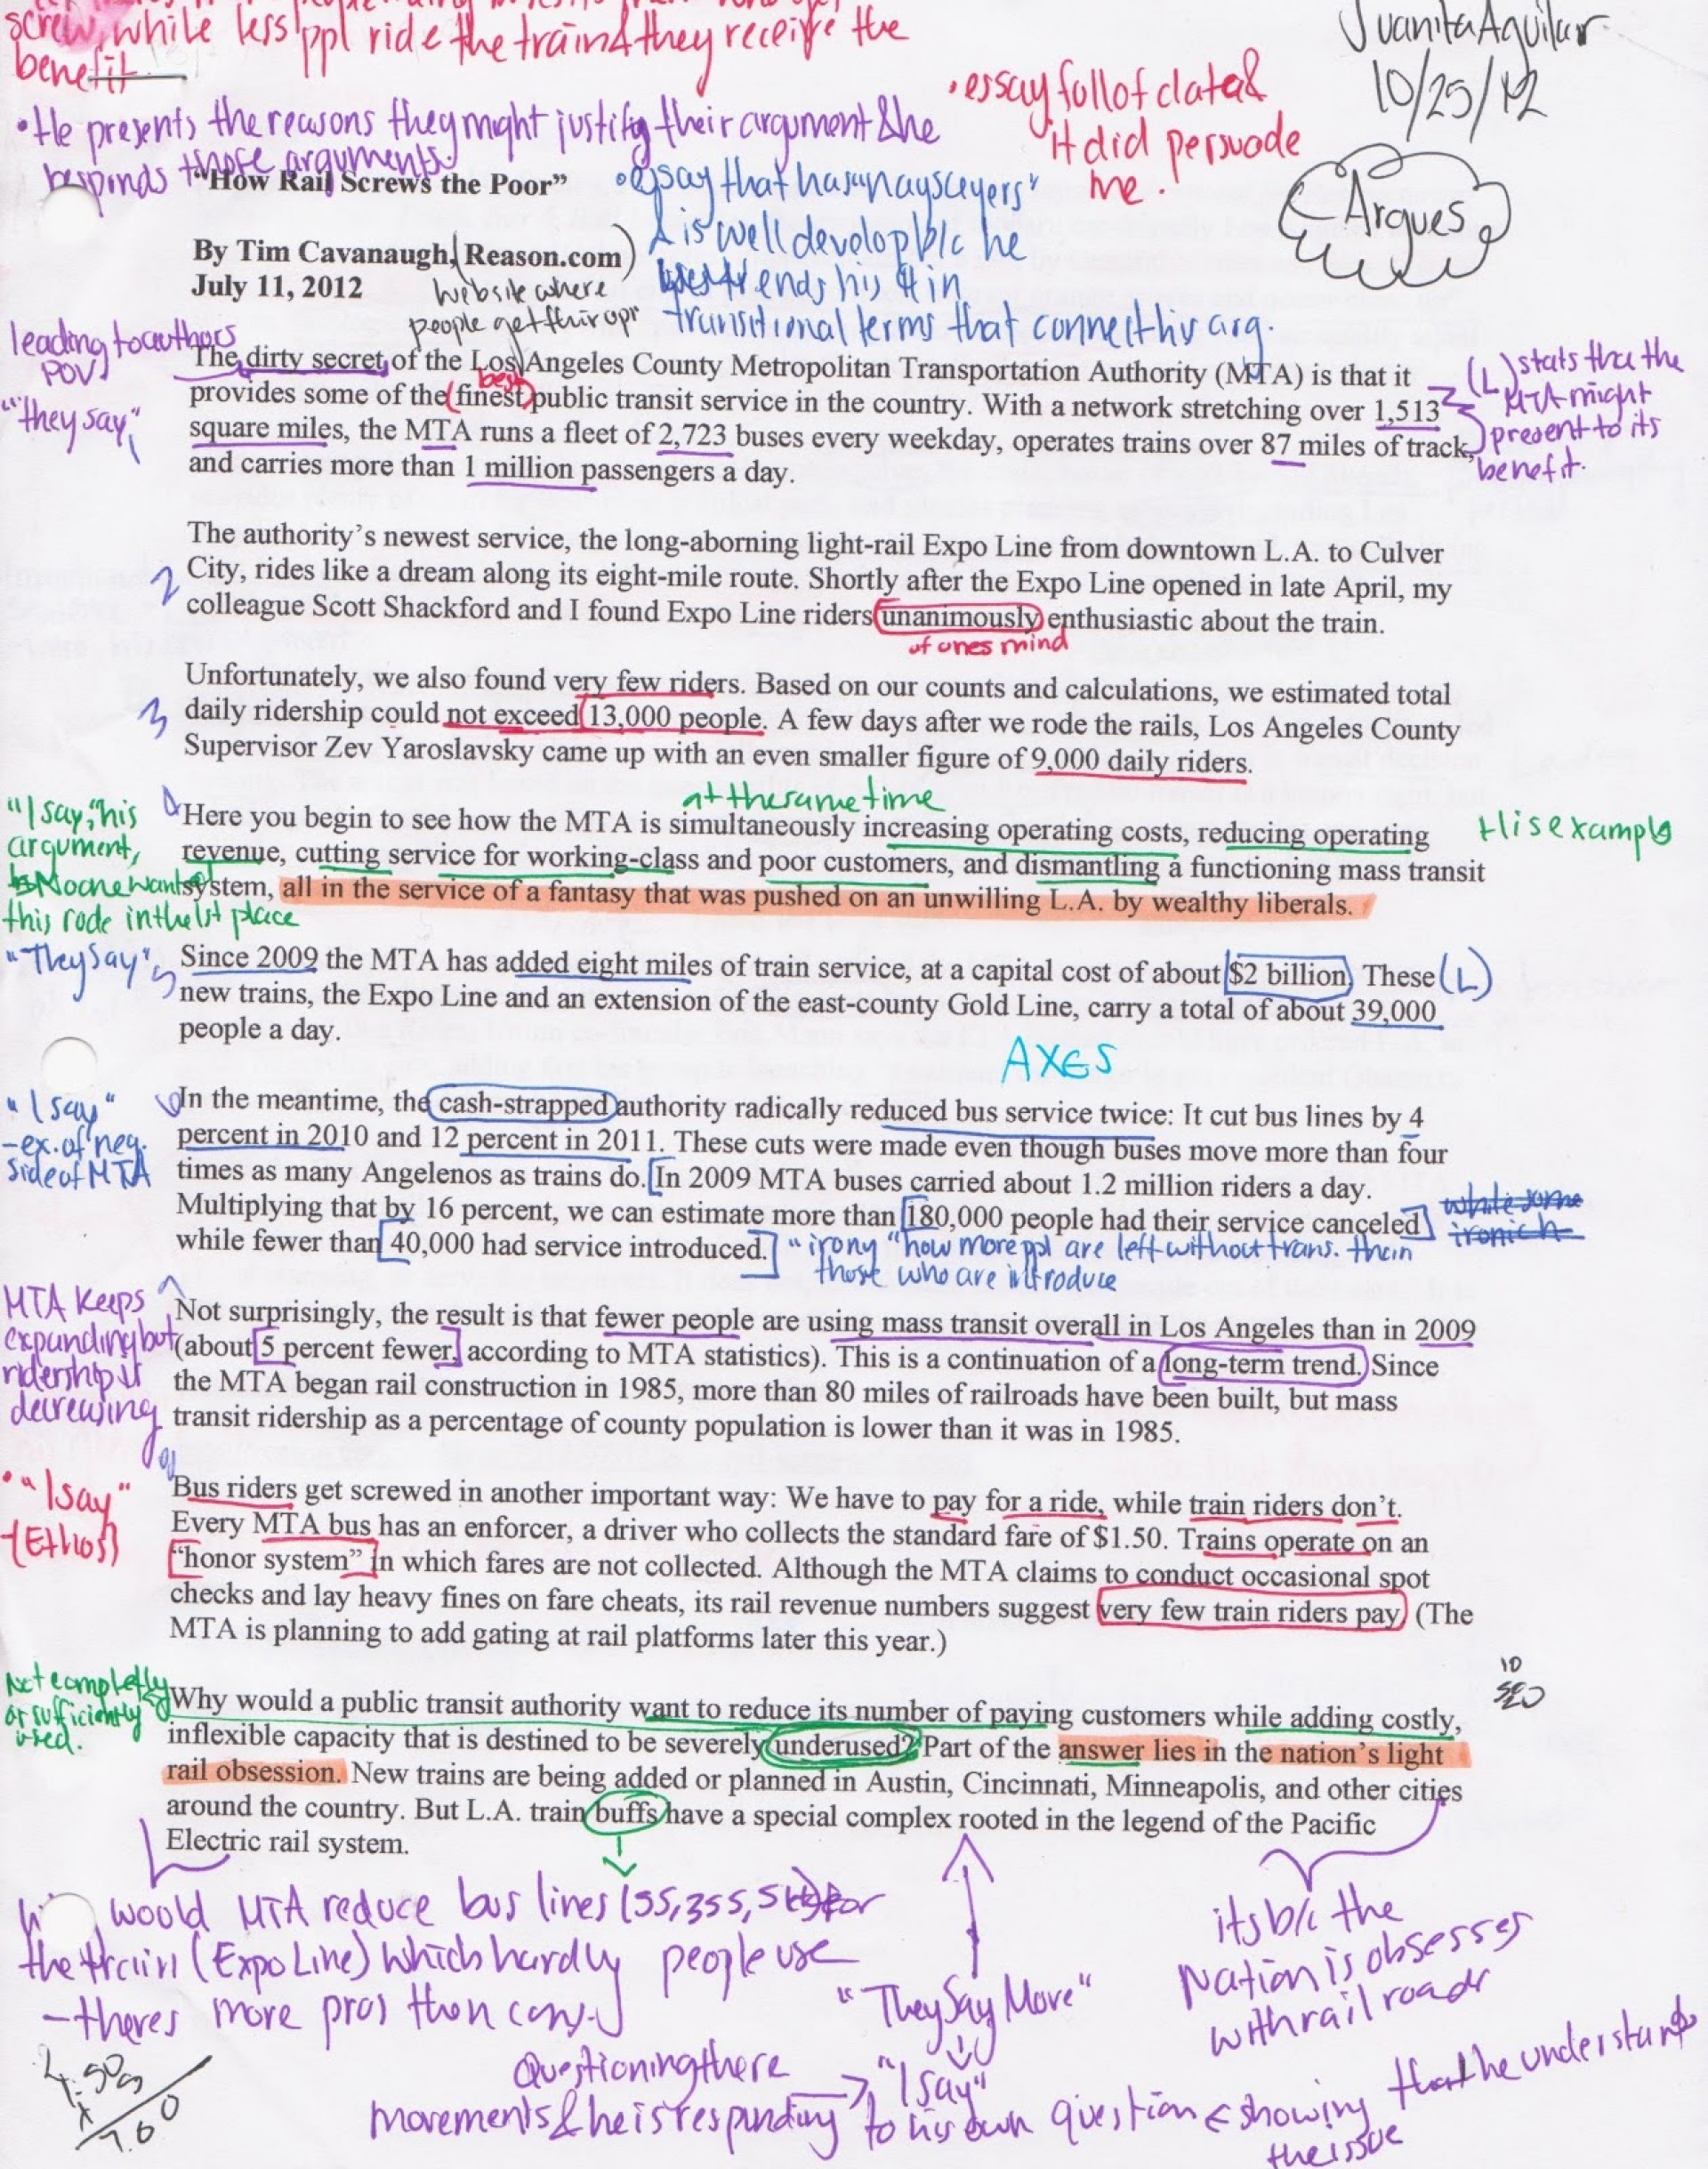 017 Annotation2 Essay Example How Tonotate Wondrous To Annotate An A Movie In Critical 1920